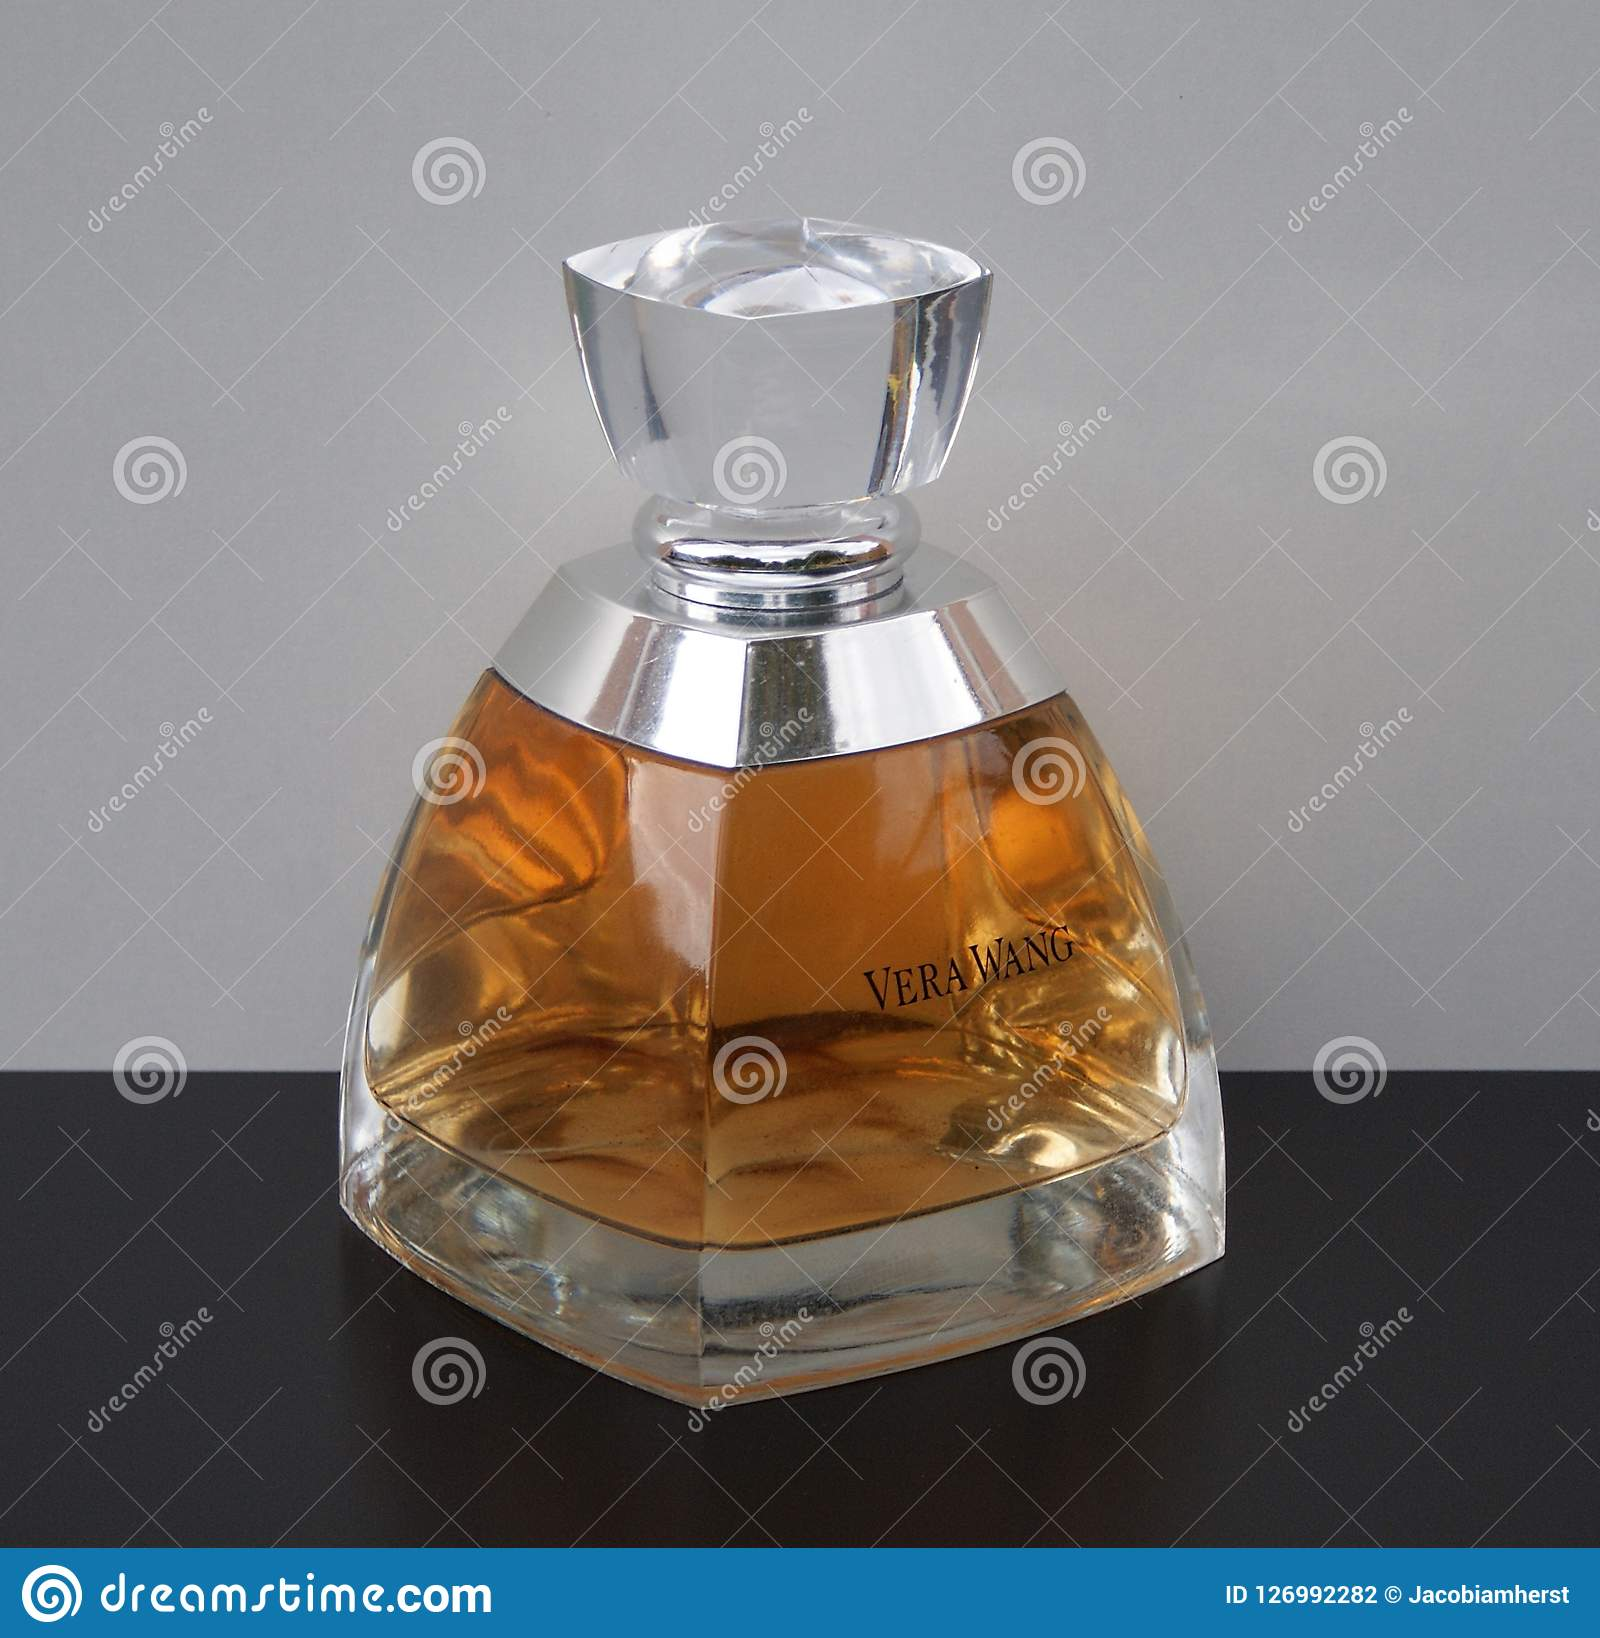 Vera Wang Fragrance For Ladies Large Perfume Bottle Editorial Photography Image Of Close Care 126992282